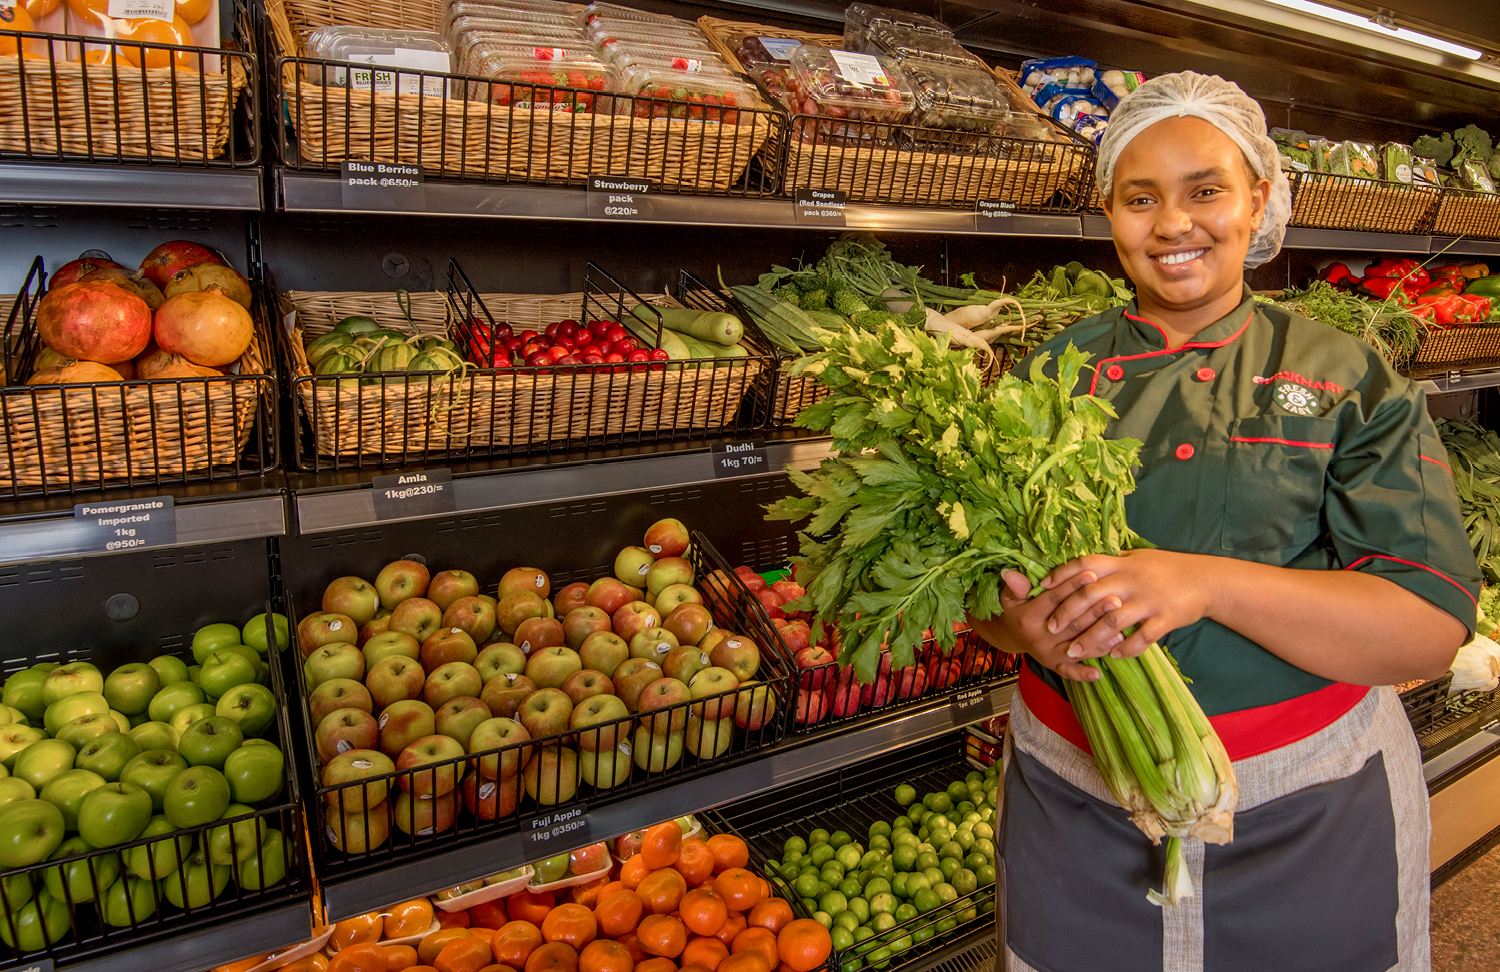 person holding vegetables in from of shelf full of fruit